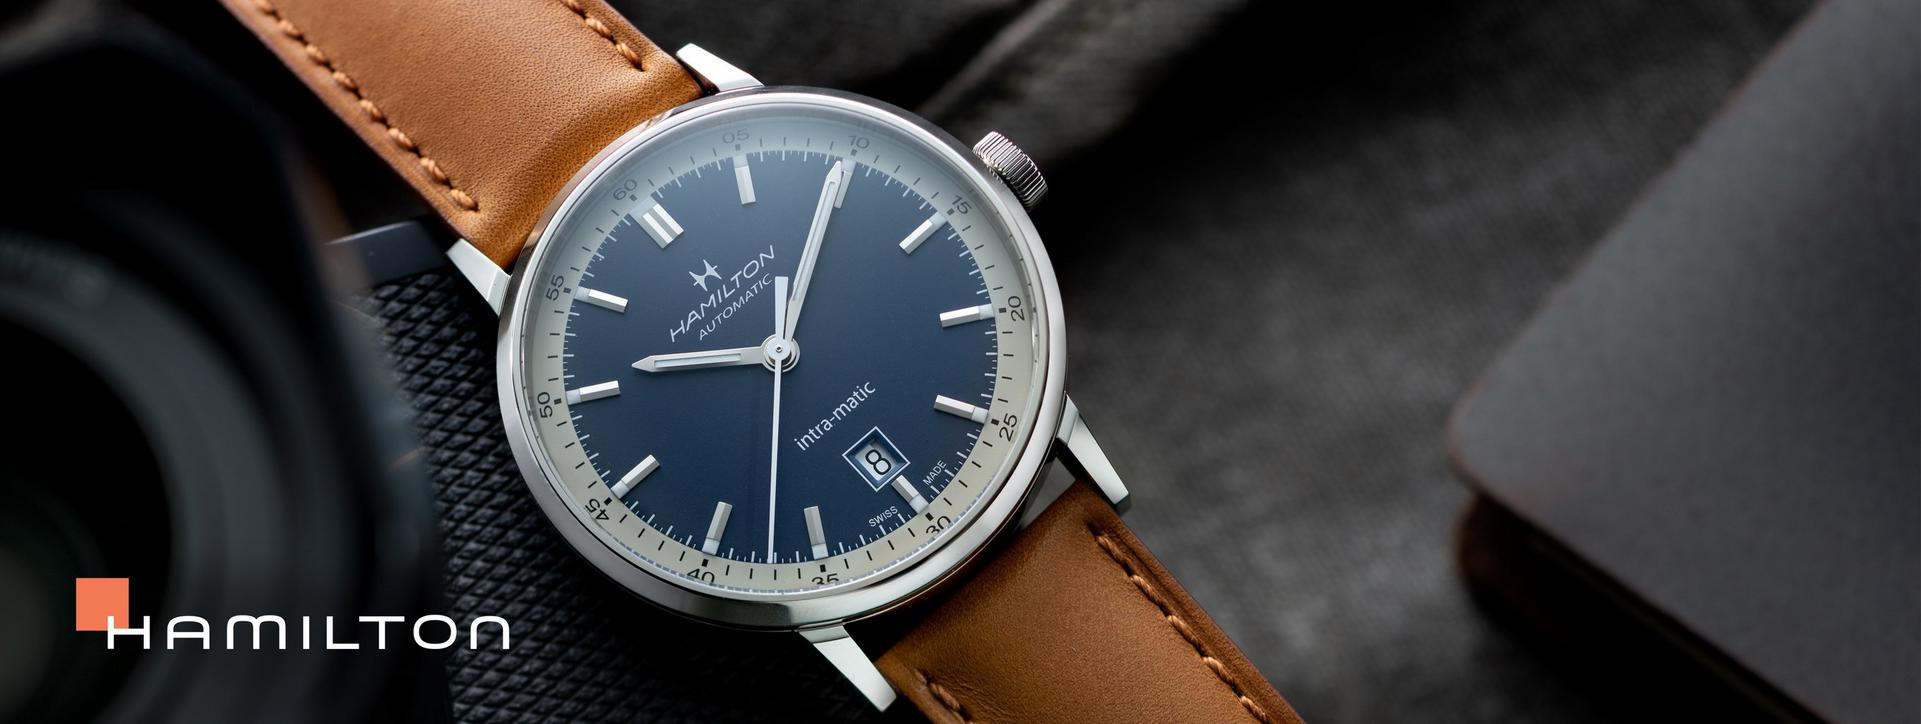 Hamilton, Brown Leather Watch with Blue Face